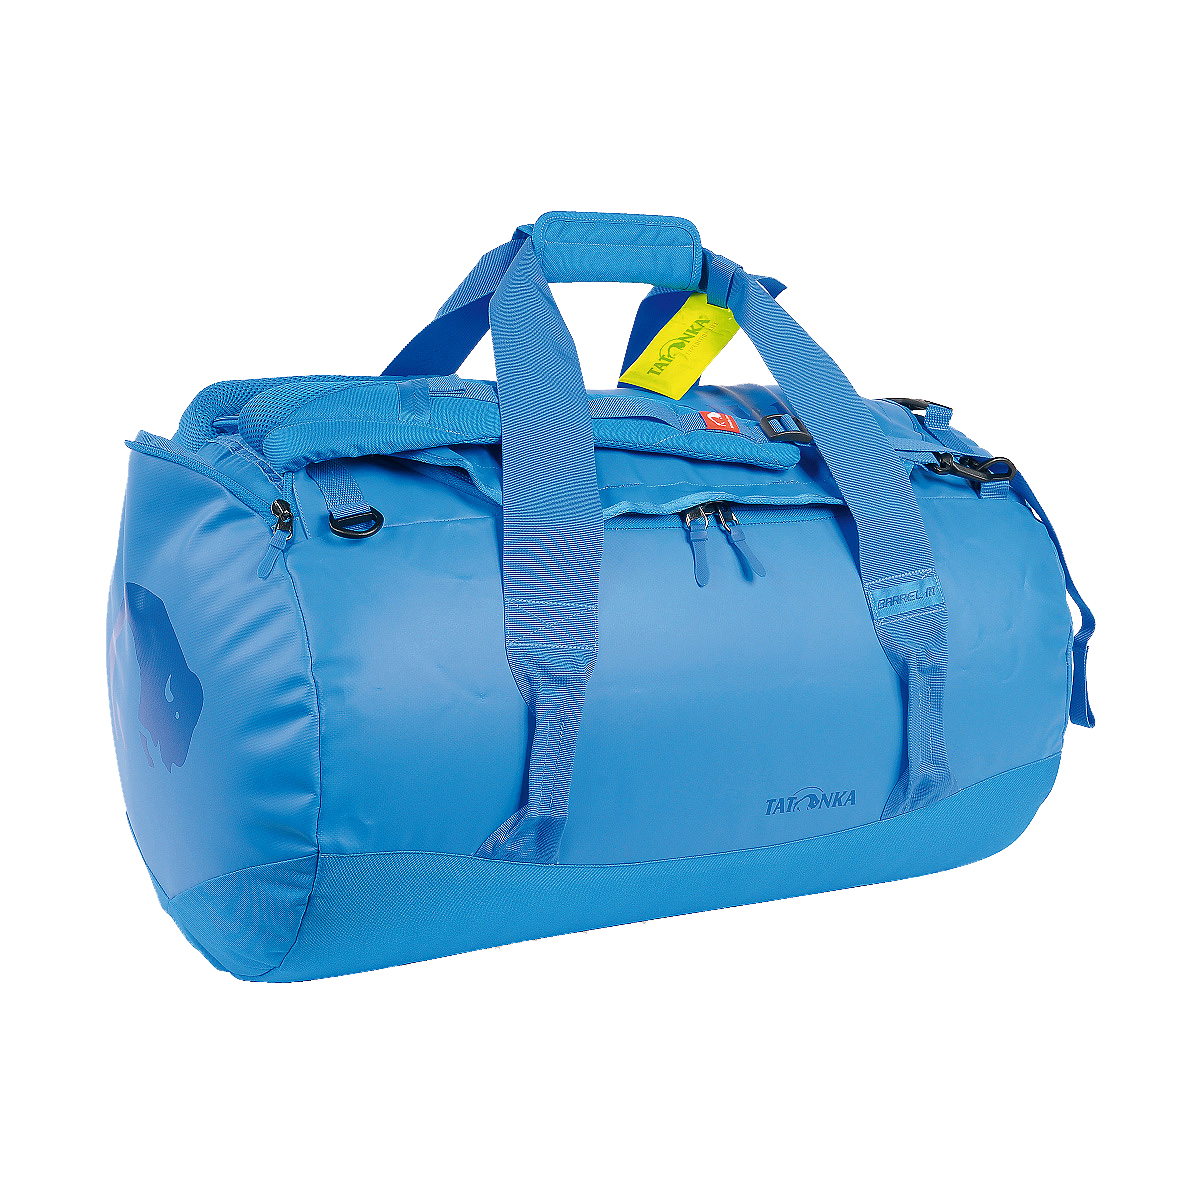 Tatonka Barrel Medium 65L - Tatonka 17   Equipment-Packs-Travel ... 2ea145bd18ae7